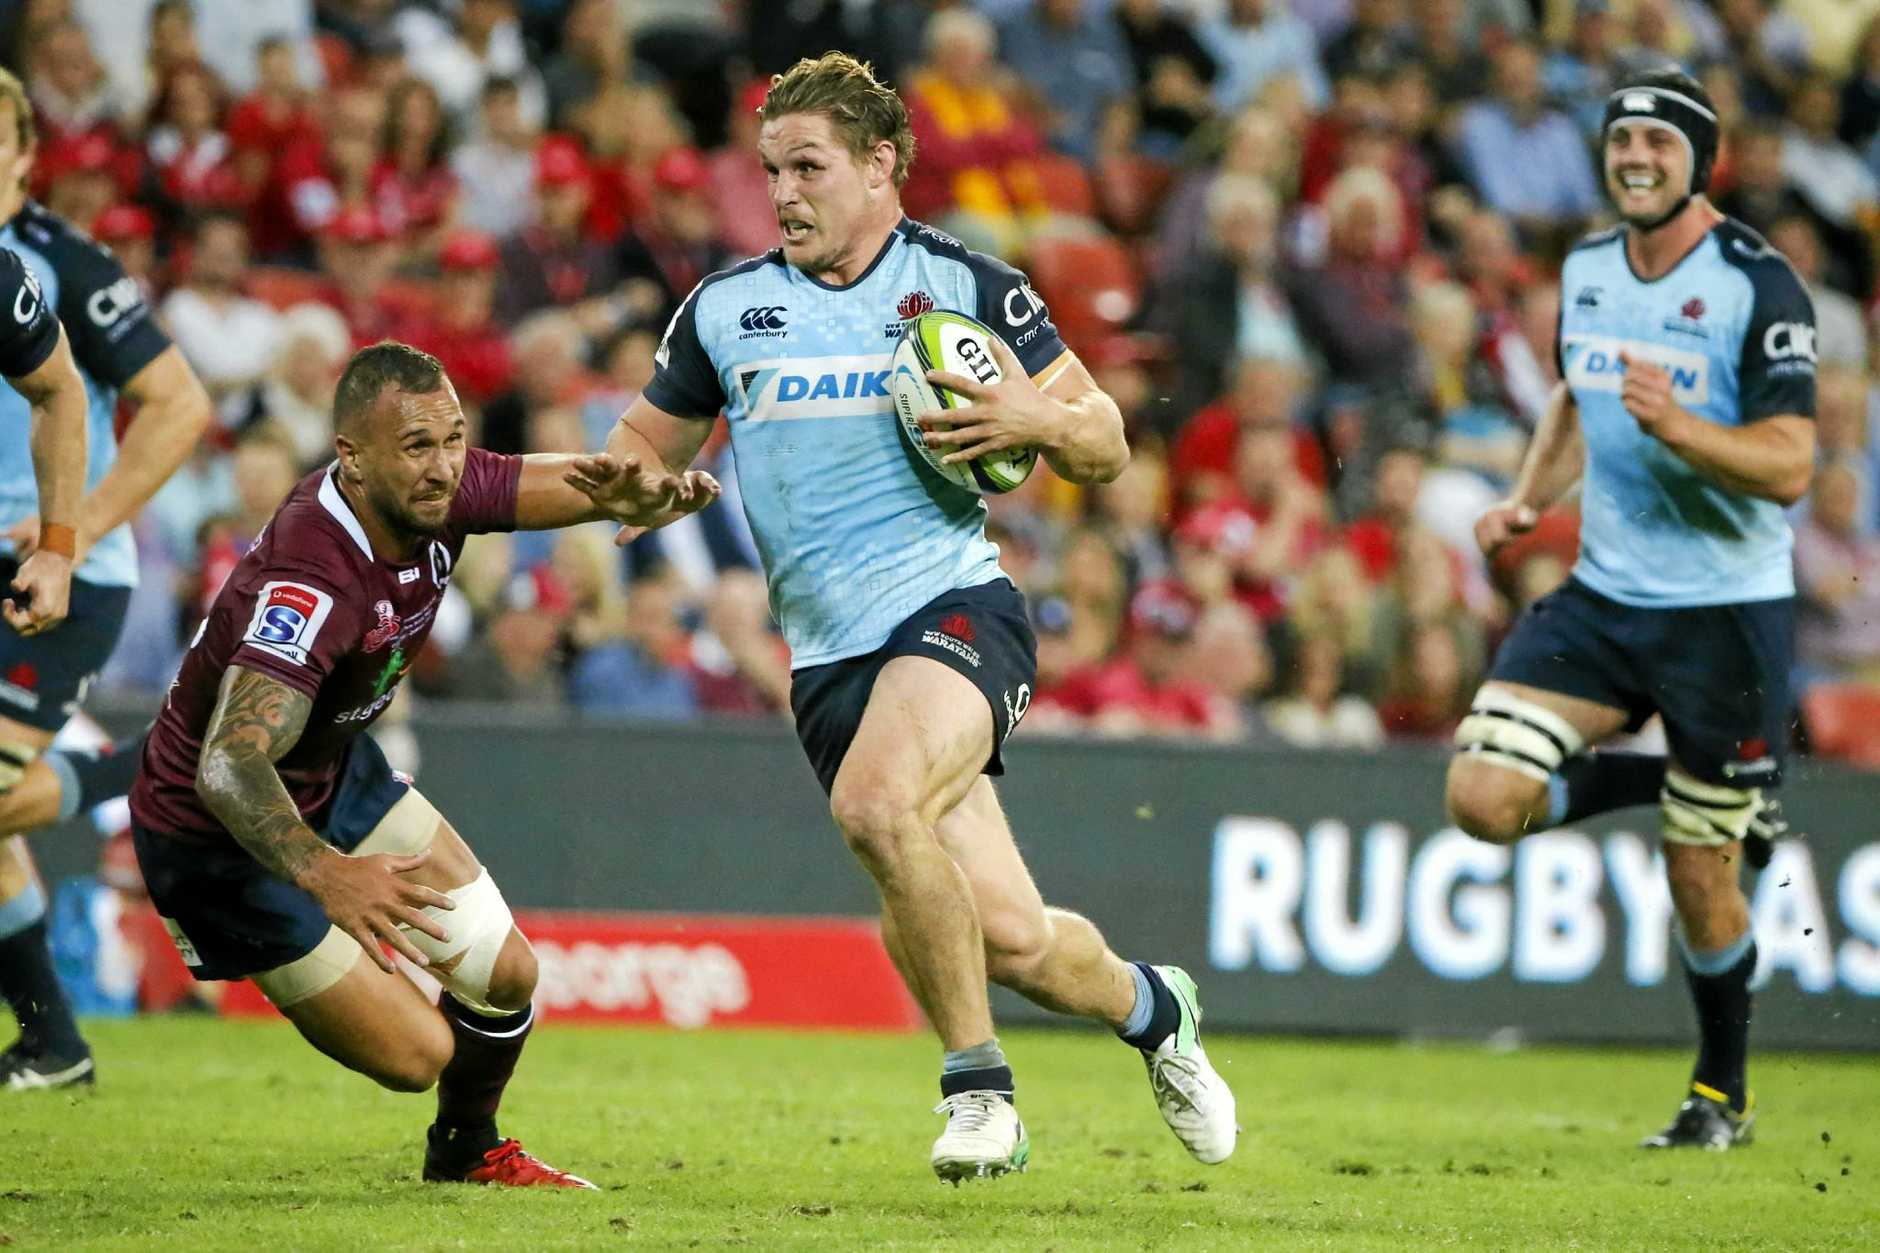 Michael Hooper of the Waratahs with the ball during the Round 10 Super Rugby match between the Queensland Reds and the NSW Waratahs at Suncorp Stadium in Brisbane, Saturday, April 29, 2017. (AAP Image/Glenn Hunt) NO ARCHIVING, EDITORIAL USE ONLY